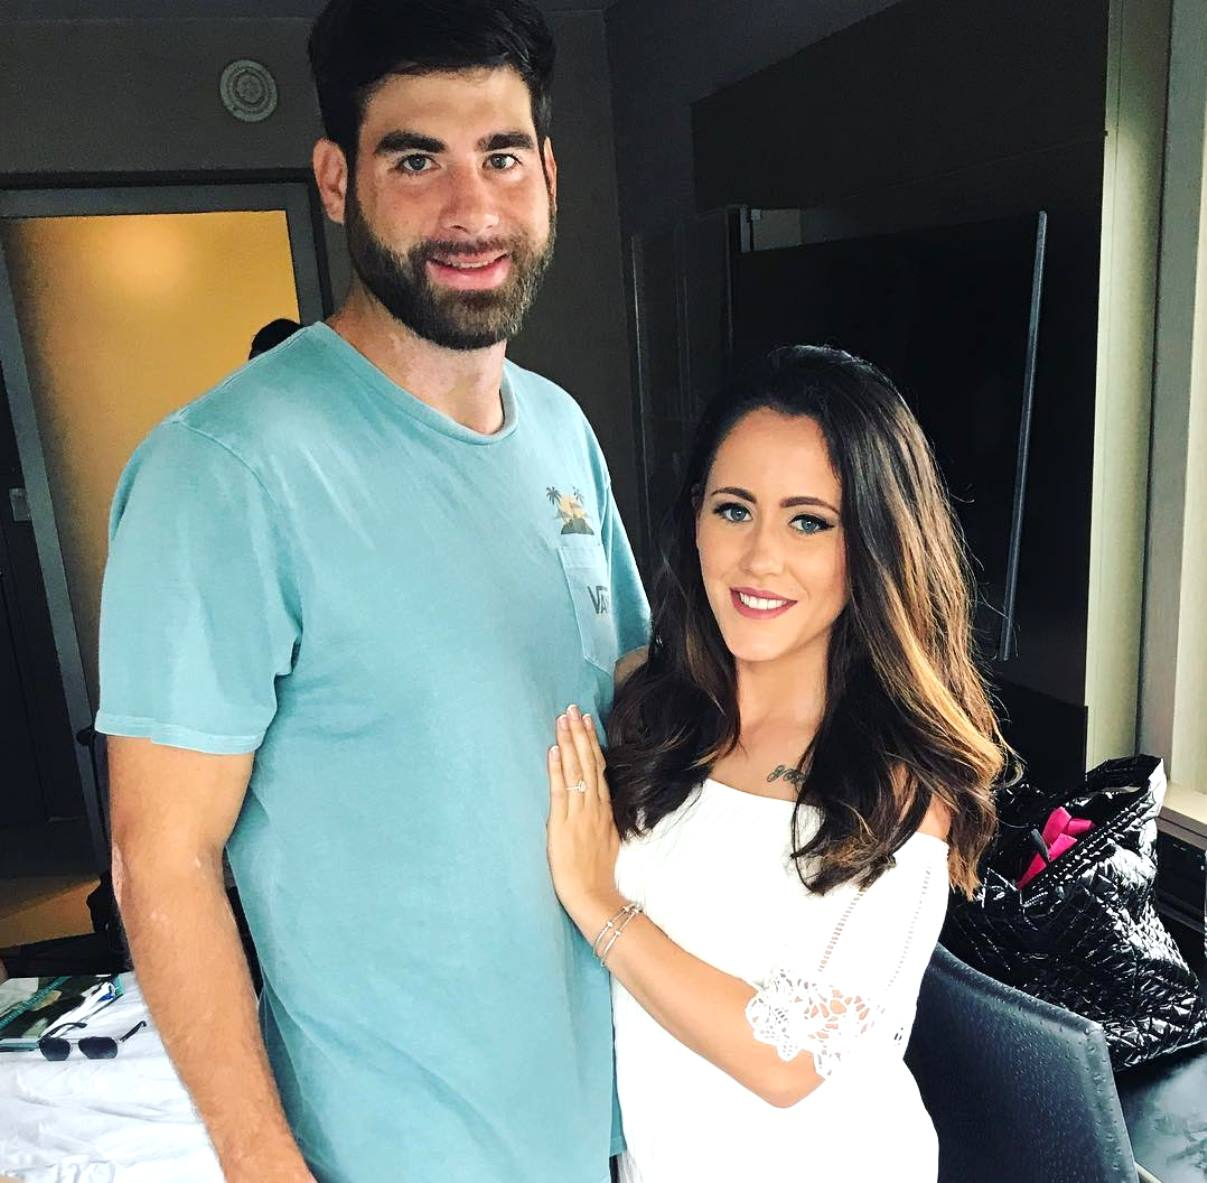 Teen Mom 2's Jenelle Evans Breaks Law by Burning Kailyn Lowry's Gift, David Eason Faces Charges